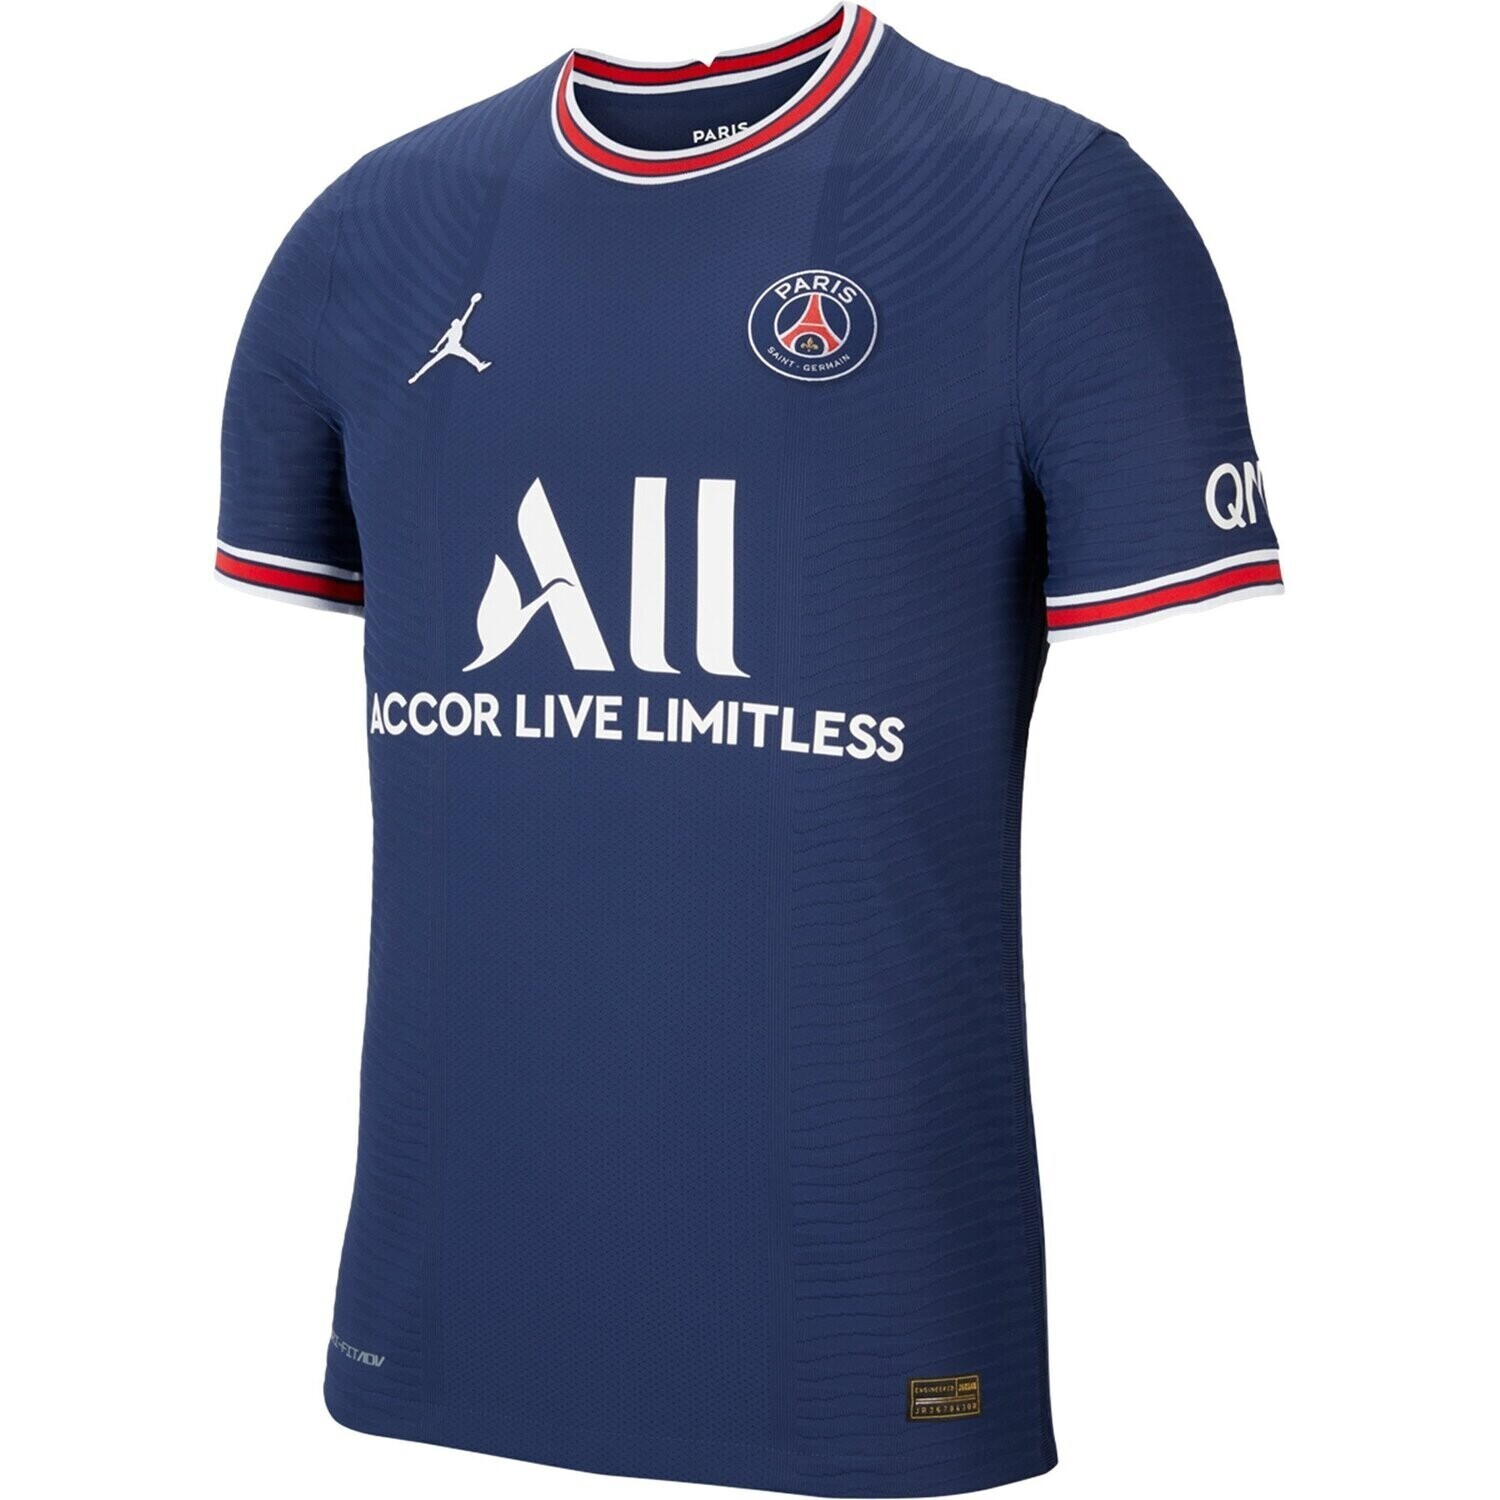 PSG Home Blue Messi #30 Ligue 1 Jersey (Player version)